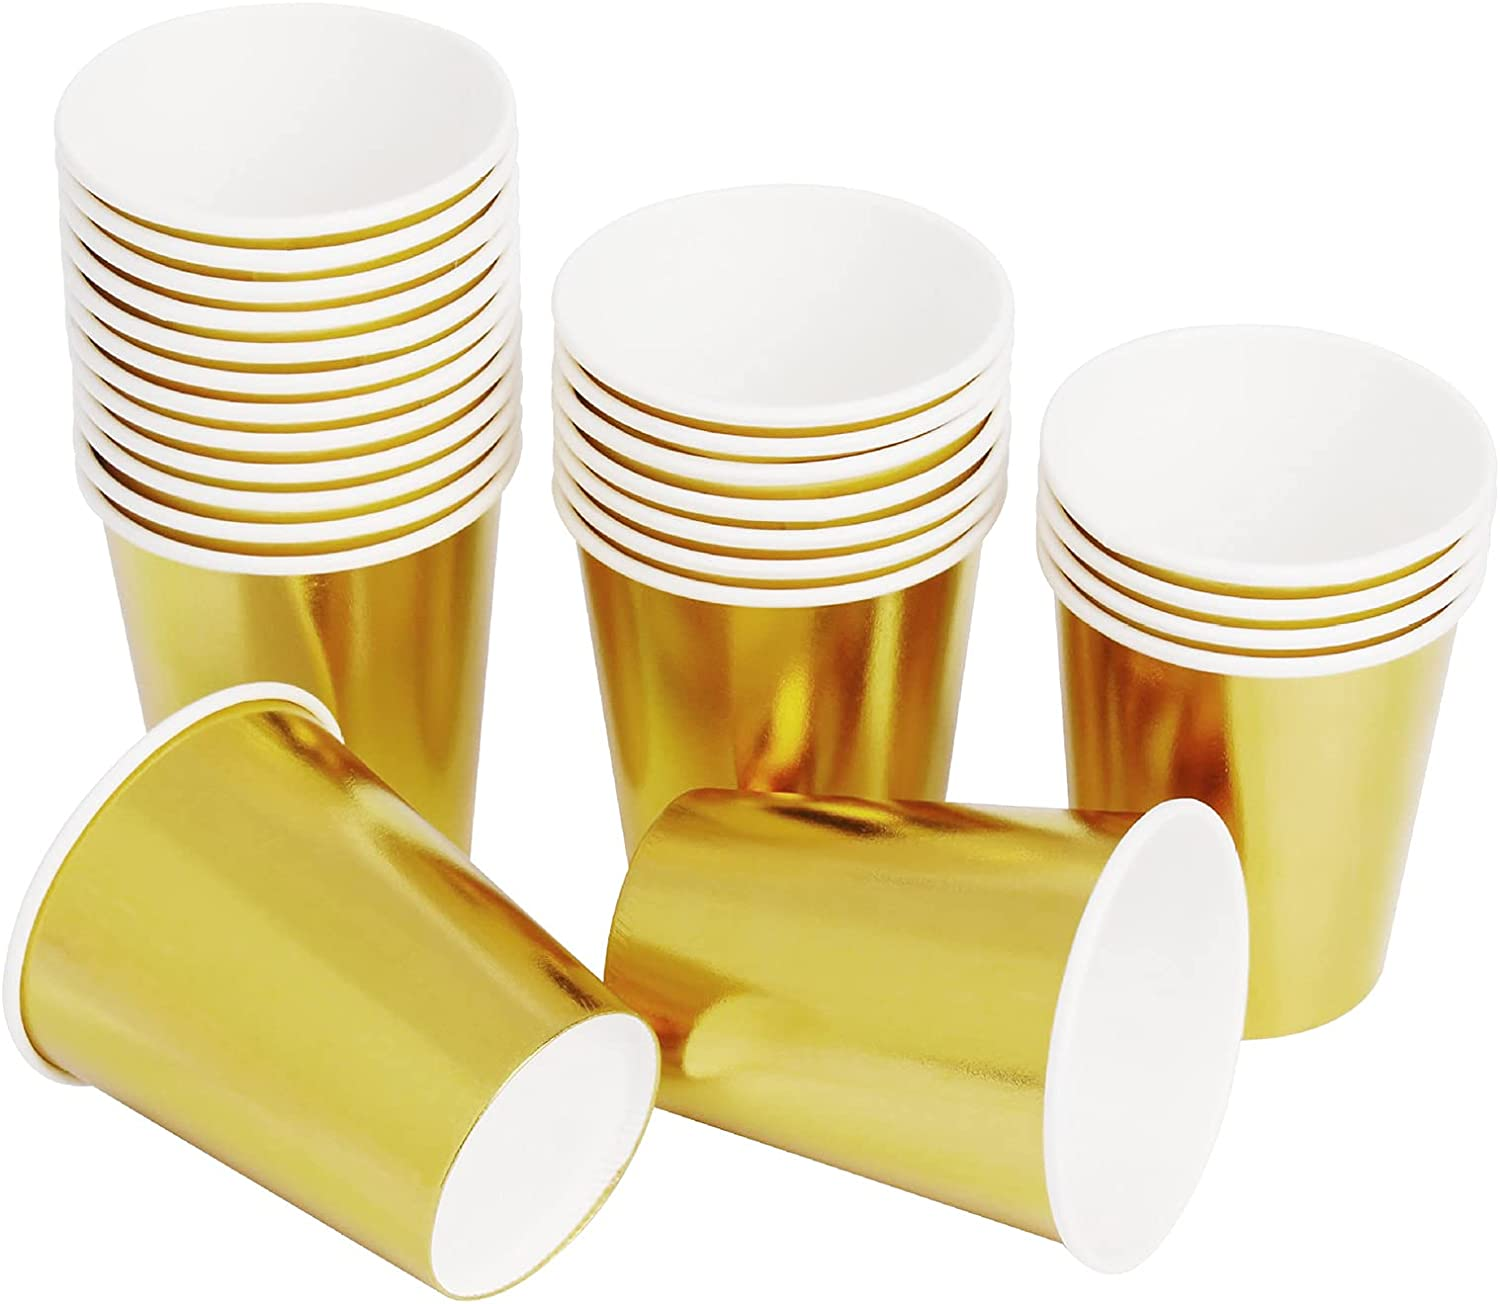 Gold Paper Cups 9 oz [50 pack] Disposable Cups for Hot Cold Drinks Tea Coffee Water Milk Juice - Fashion Glitter Champagne Gold Design for Picnic Home Party Birthday Wedding Anniversary Christmas